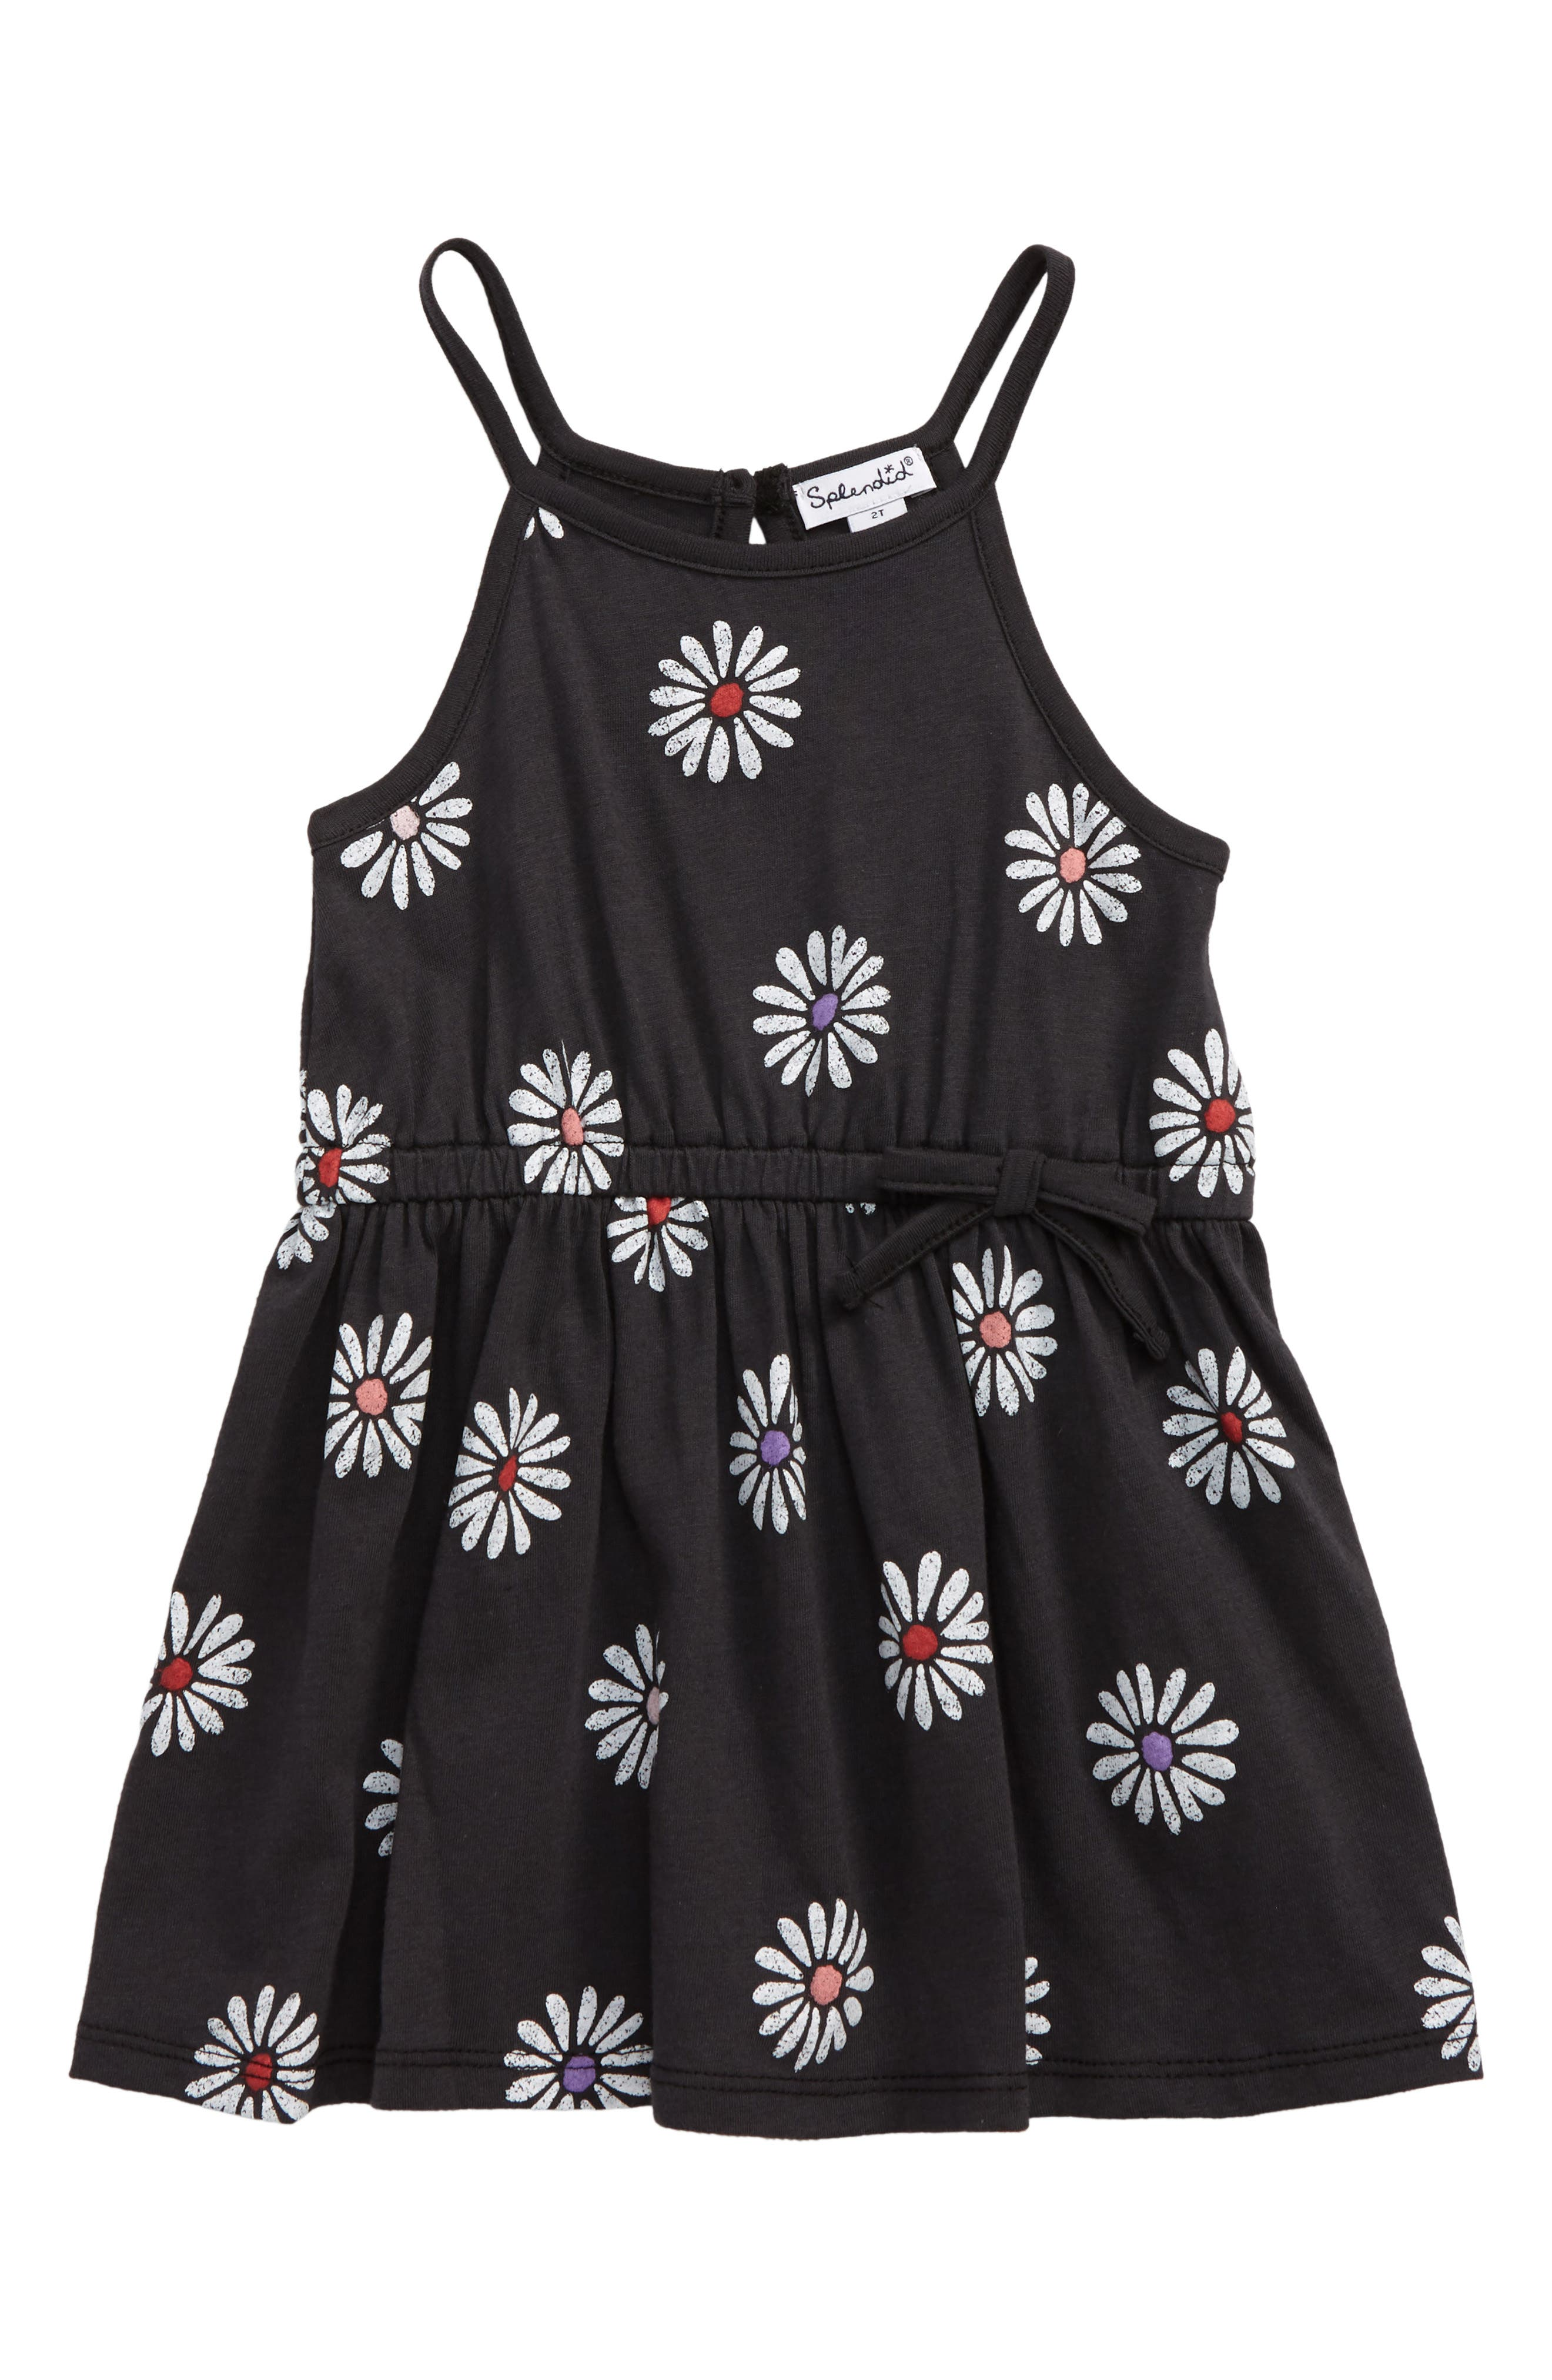 Girls' Clothing (newborn-5t) Clothing, Shoes & Accessories The Little White Company Girls Outfit Moderate Price